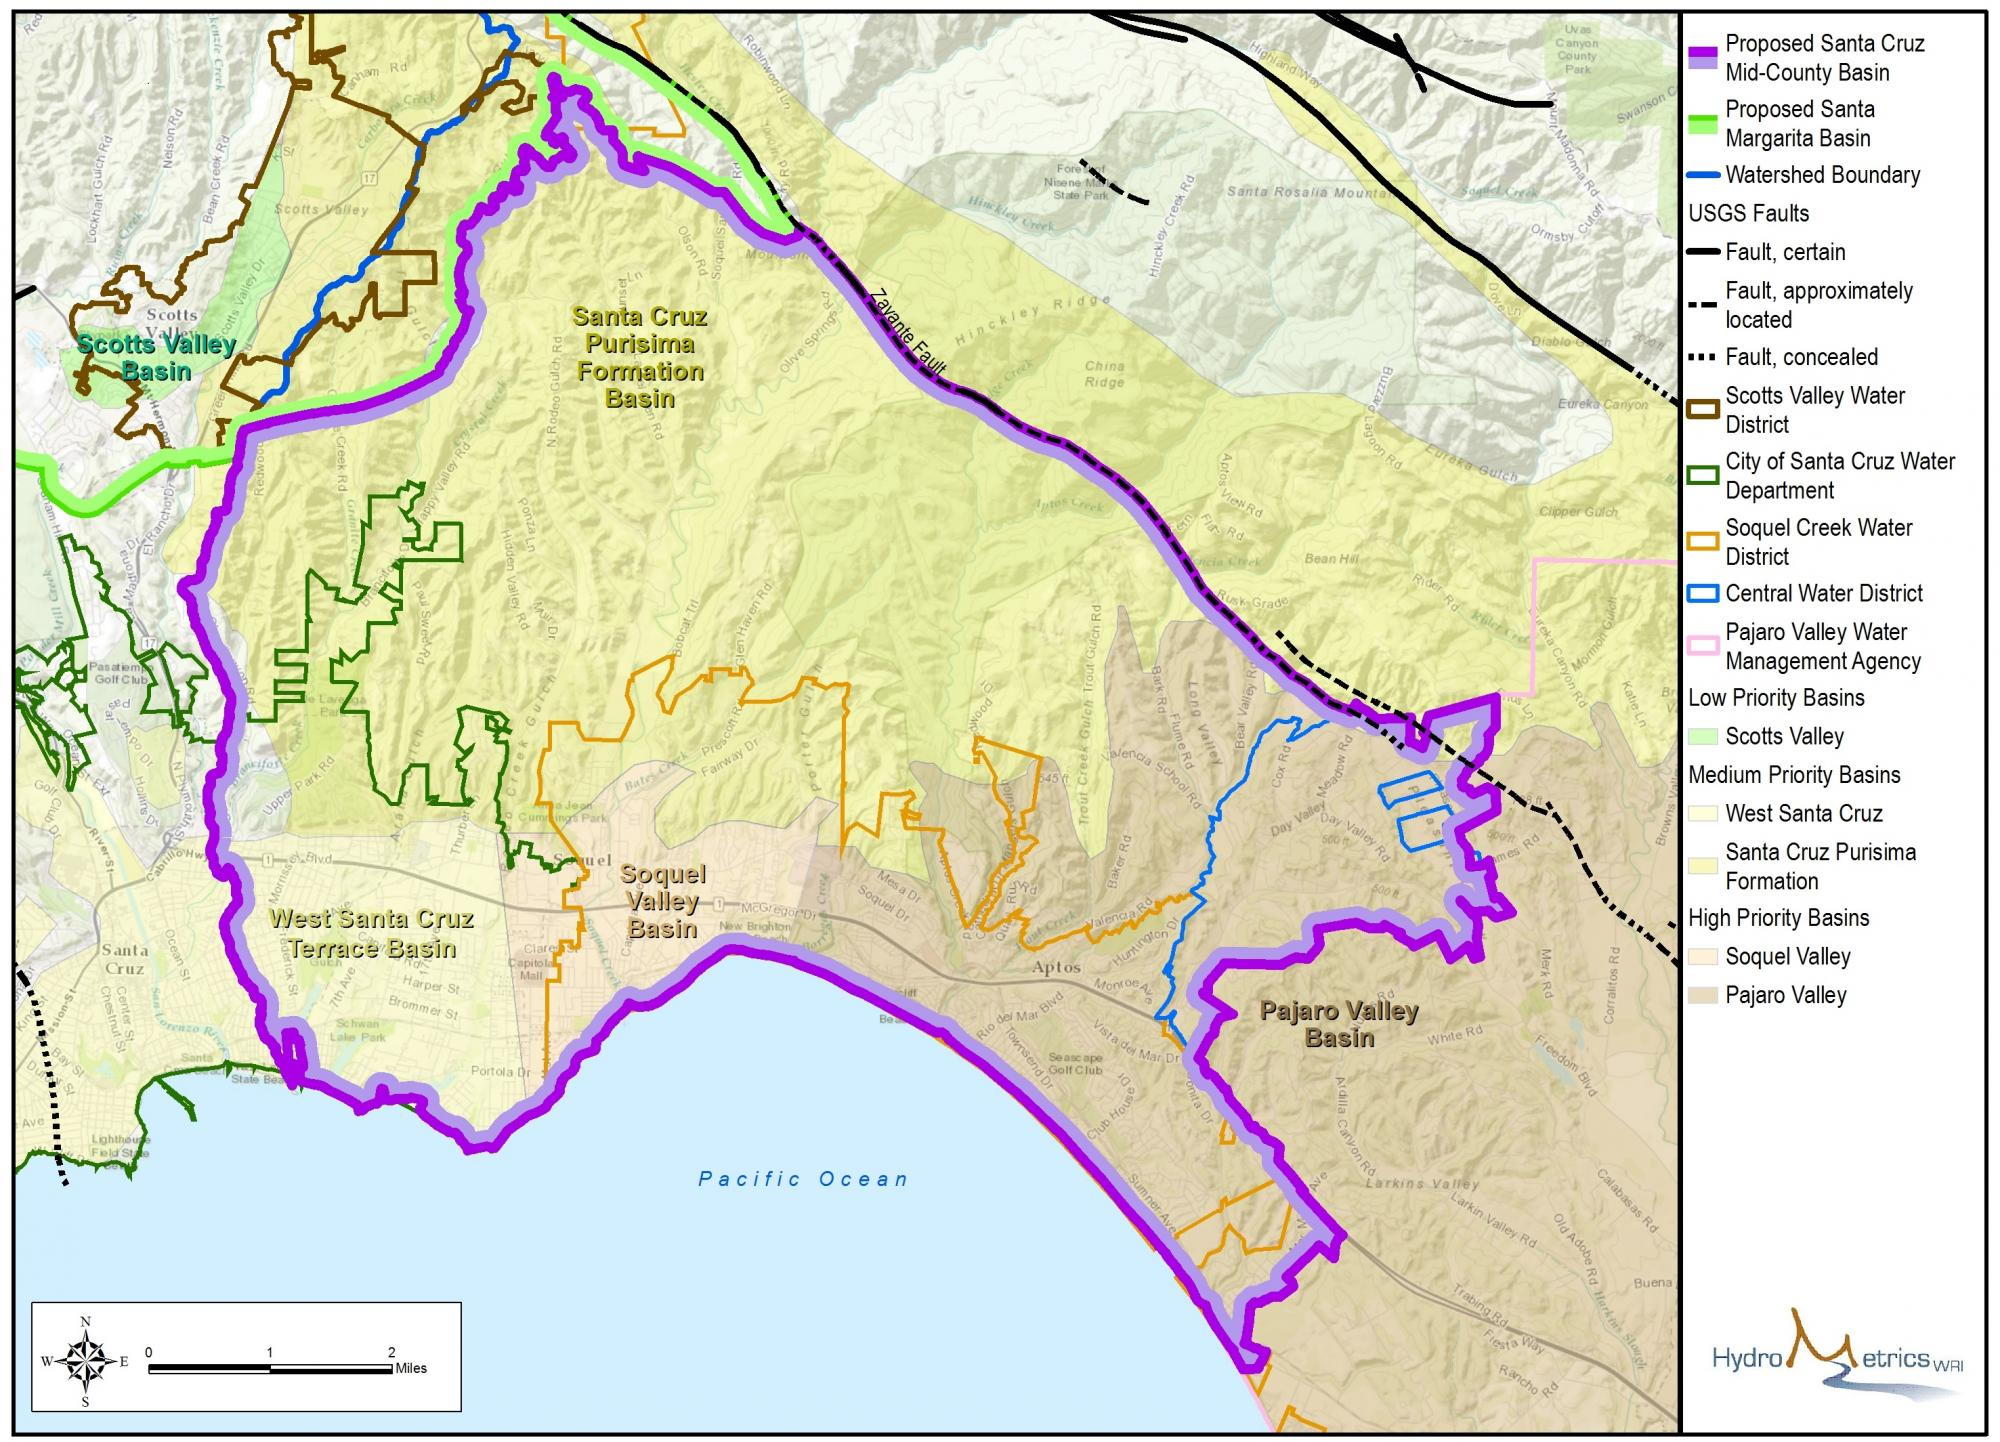 Mid-County Basin Area   Santa Cruz Mid-County Groundwater Agency on napa county road map, oakland road map, san fernando road map, vacaville road map, red rock canyon road map, florin road map, occidental road map, simi valley road map, sebastopol road map, barstow road map, white sands missile range road map, pleasant hill road map, cupertino road map, kapaa road map, manzini road map, bloomington road map, las marias road map, oceanside road map, temecula road map, seaside road map,